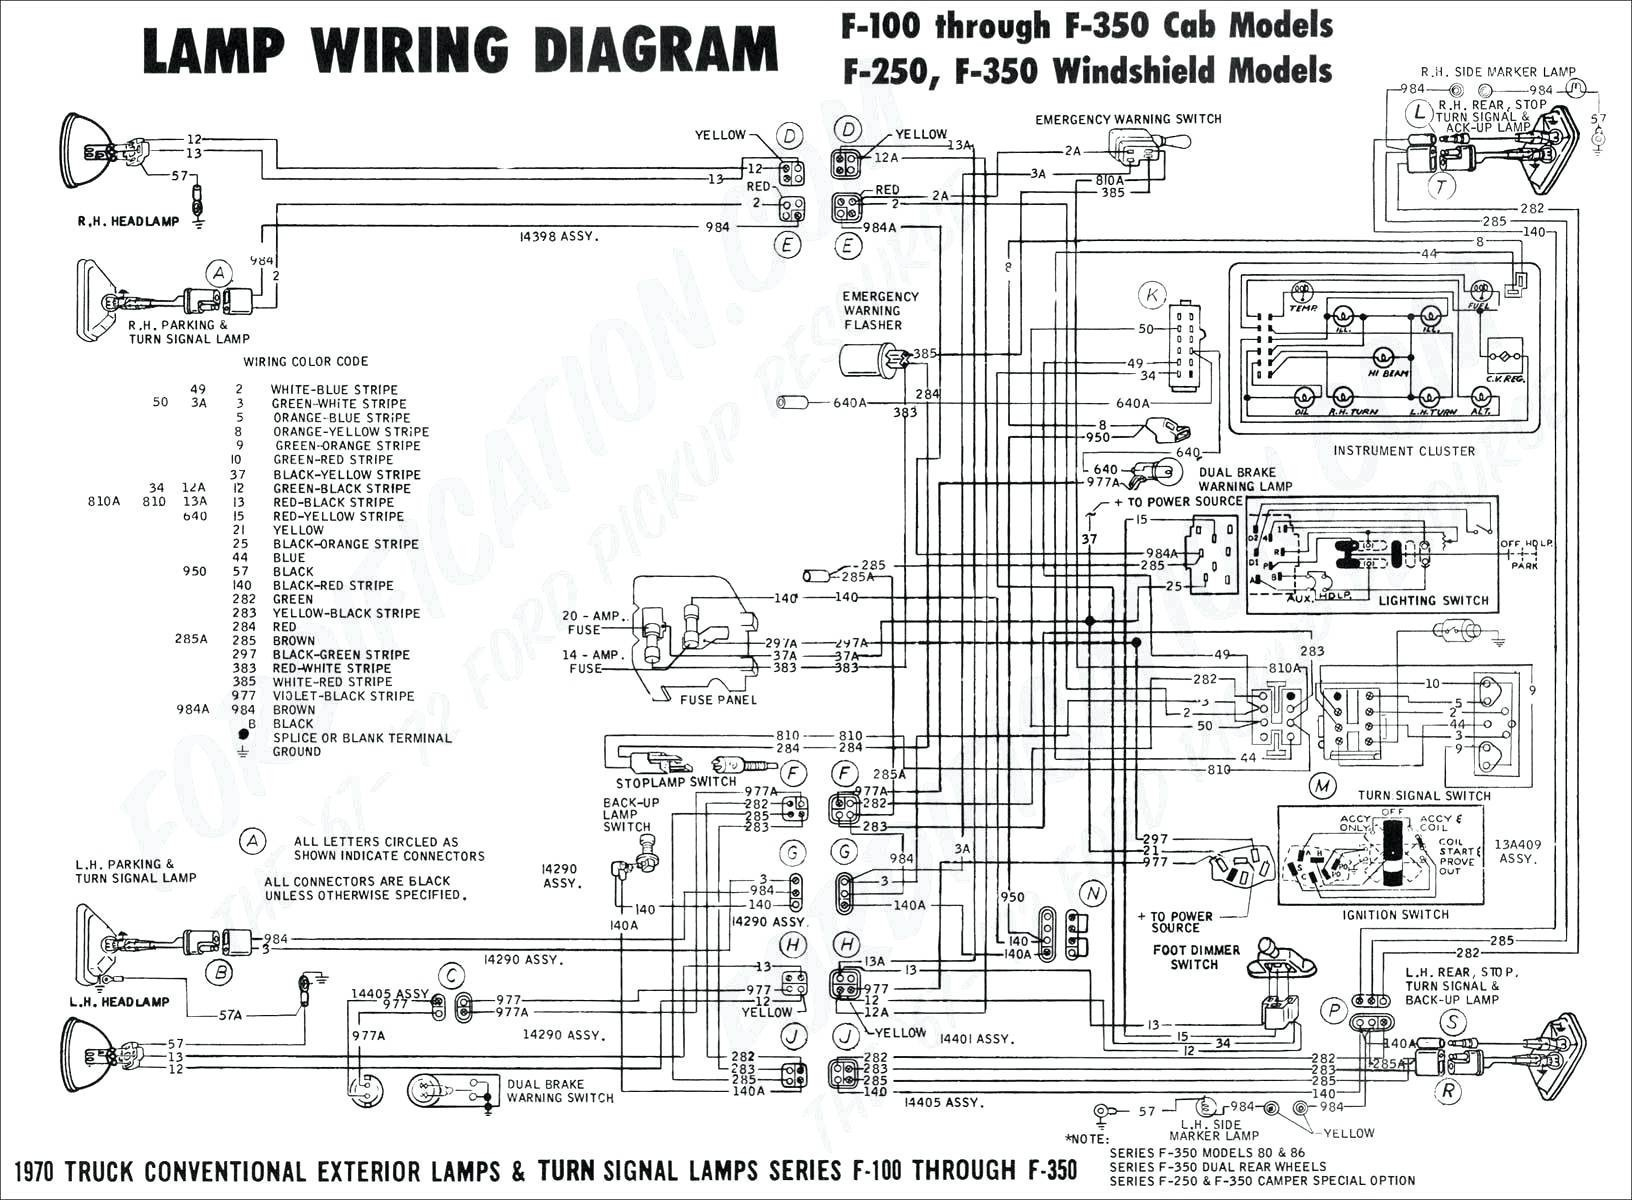 Jeep Cherokee Alternator Wiring Diagram - Vt Alternator Wiring Diagram 2017 Vt Alternator Wiring Diagram Best Alternator Wiring Diagram Jeep 4t